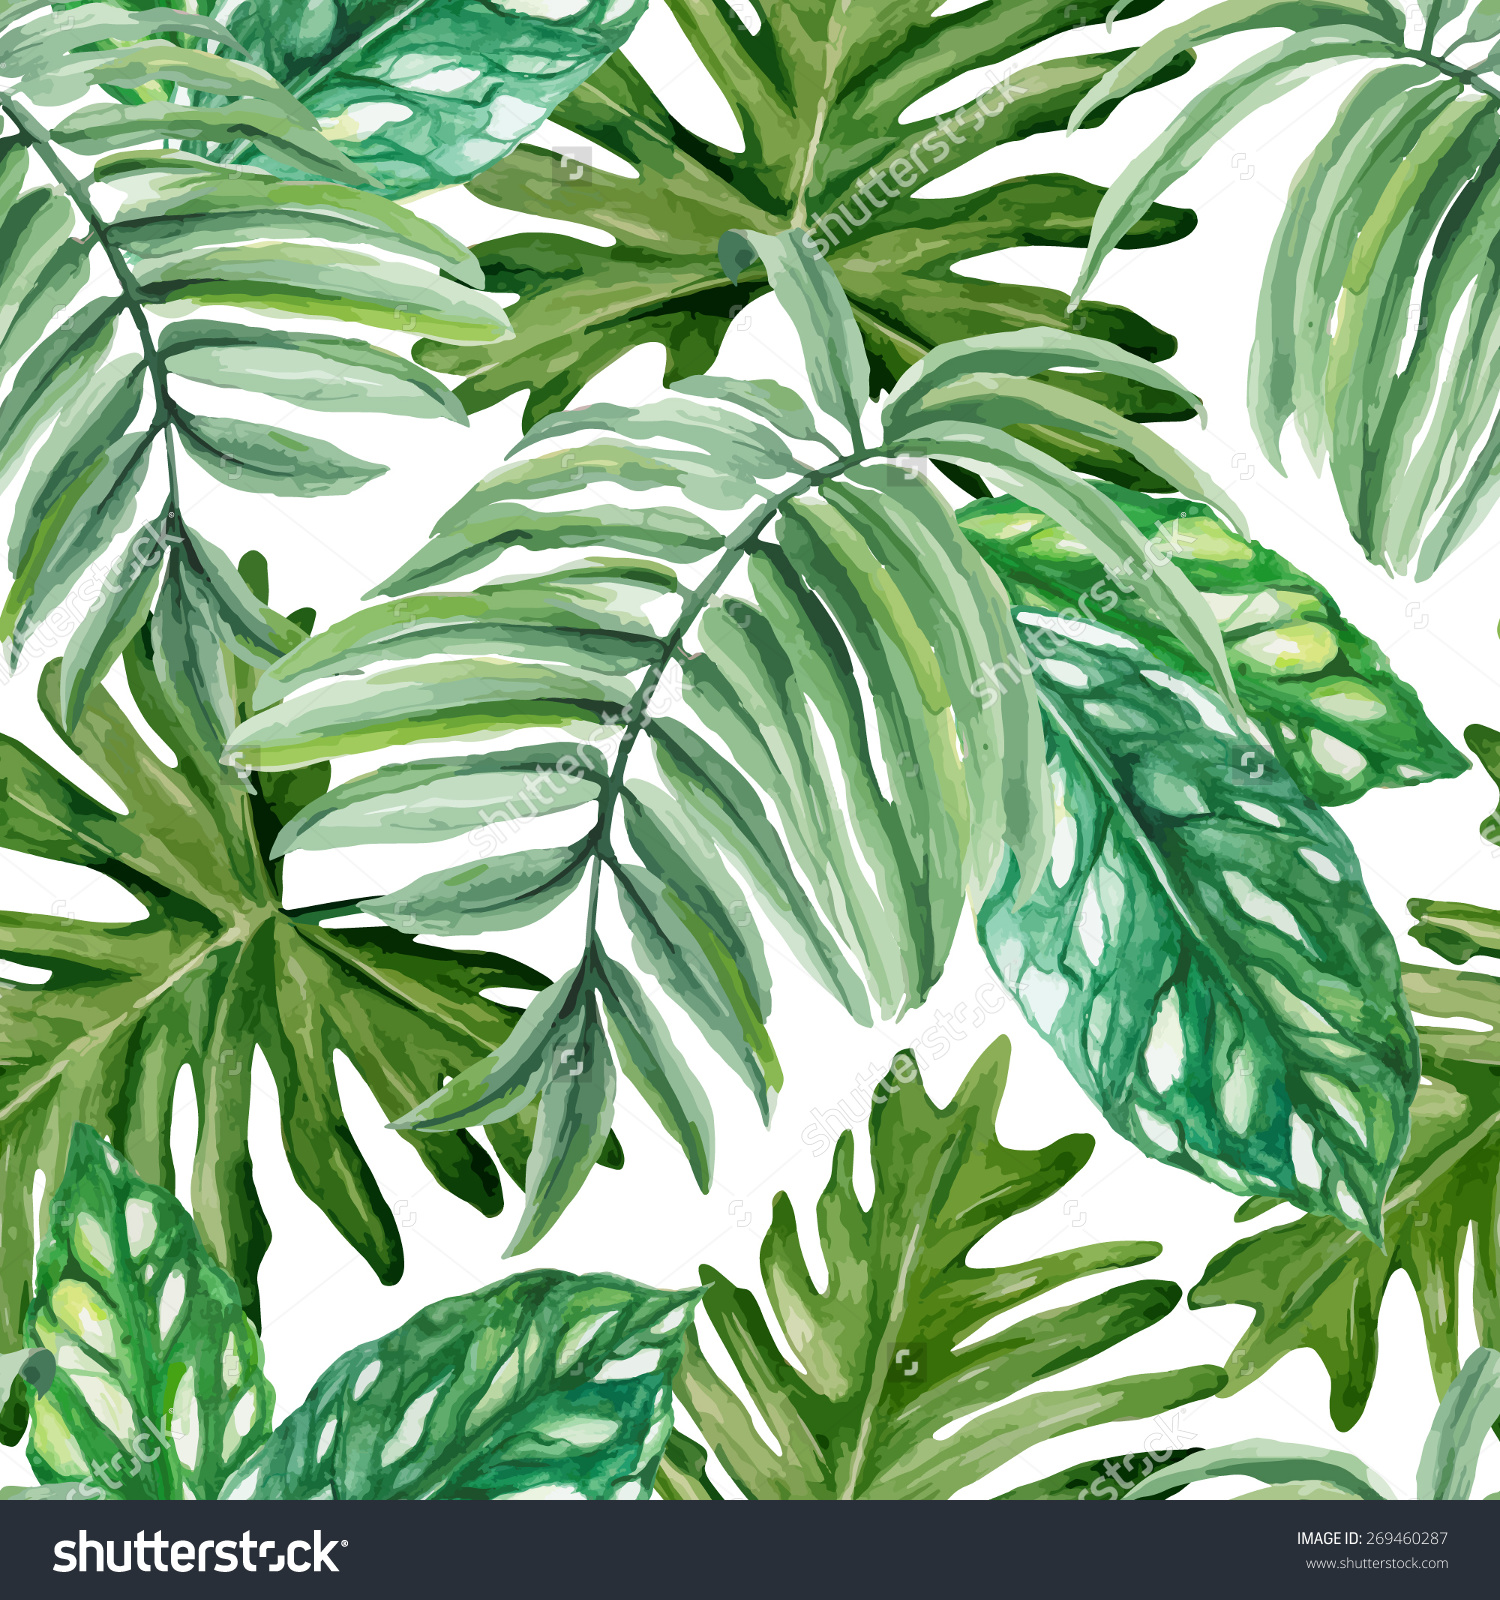 Drawn rainforest watercolor Seamless hand Exotic rainforest watercolor